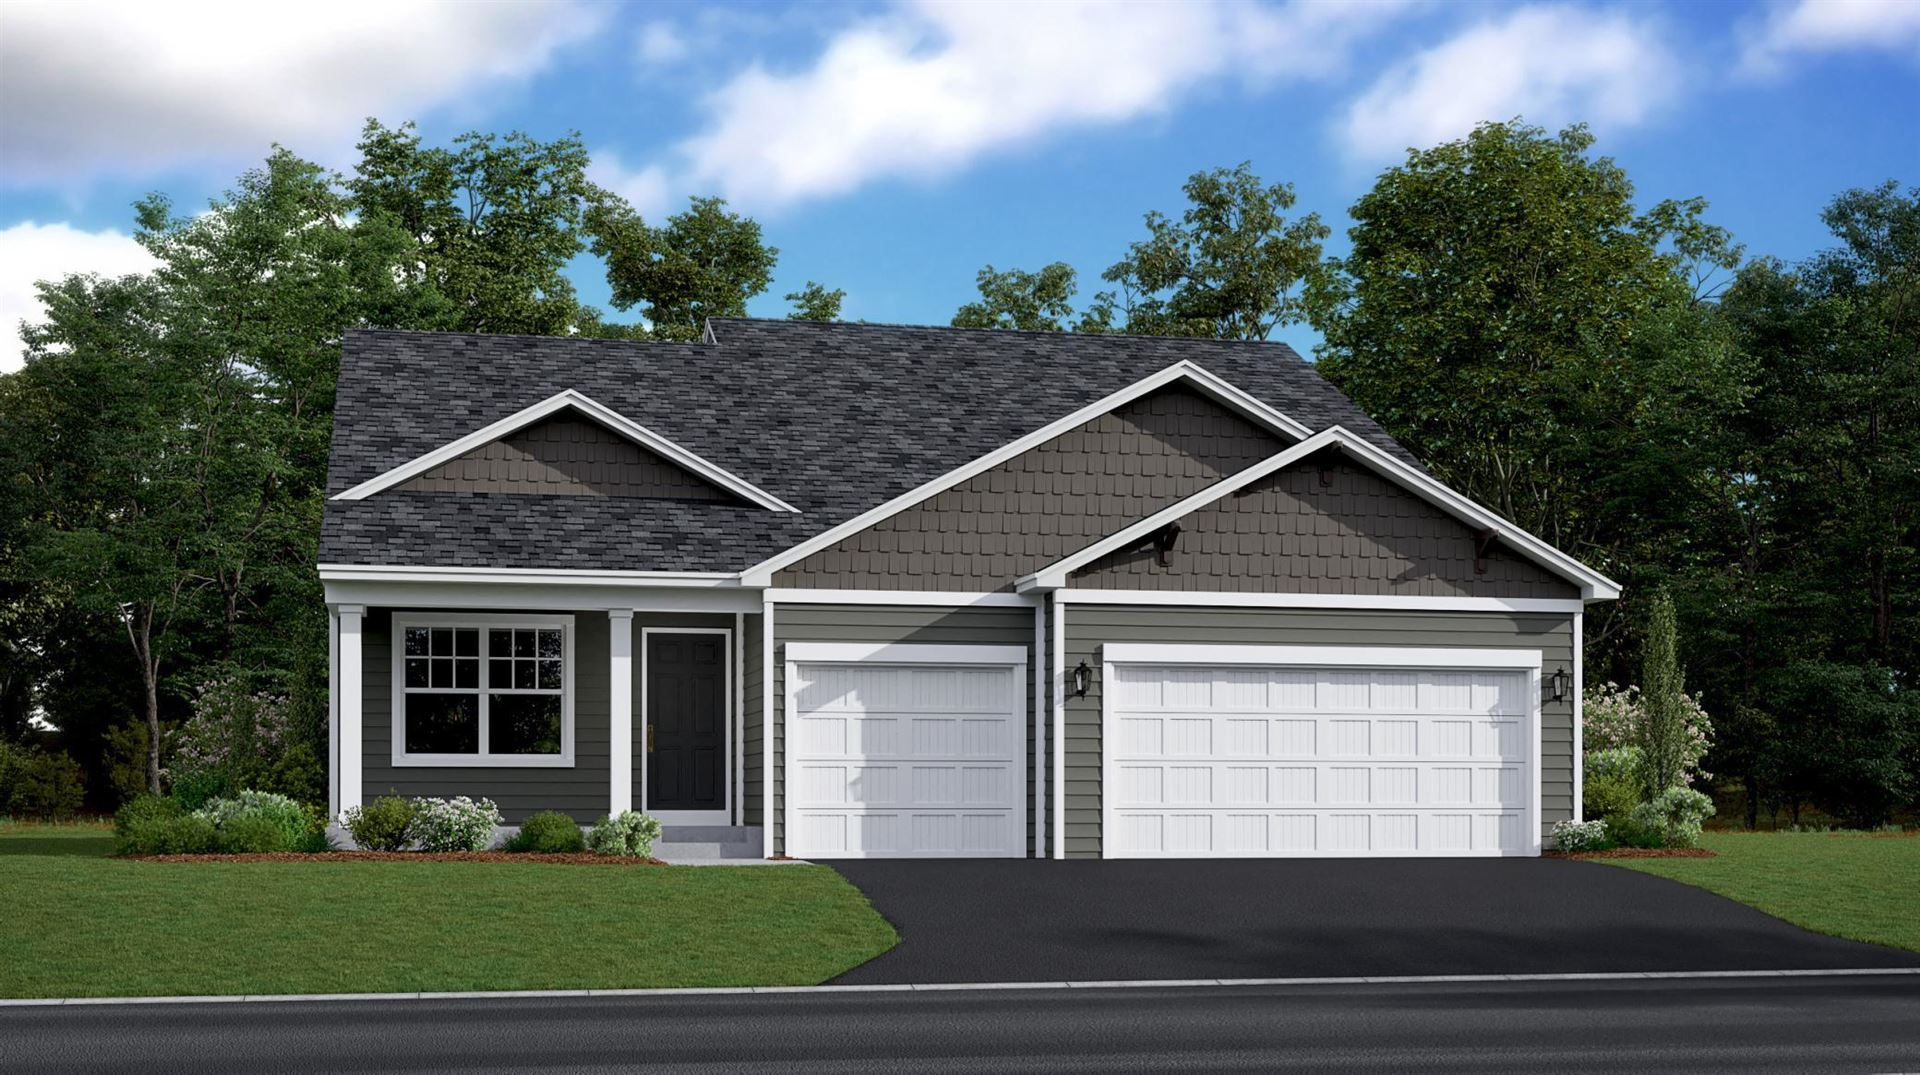 Photo of 18078 Greyhaven Path, Lakeville, MN 55044 (MLS # 5758223)